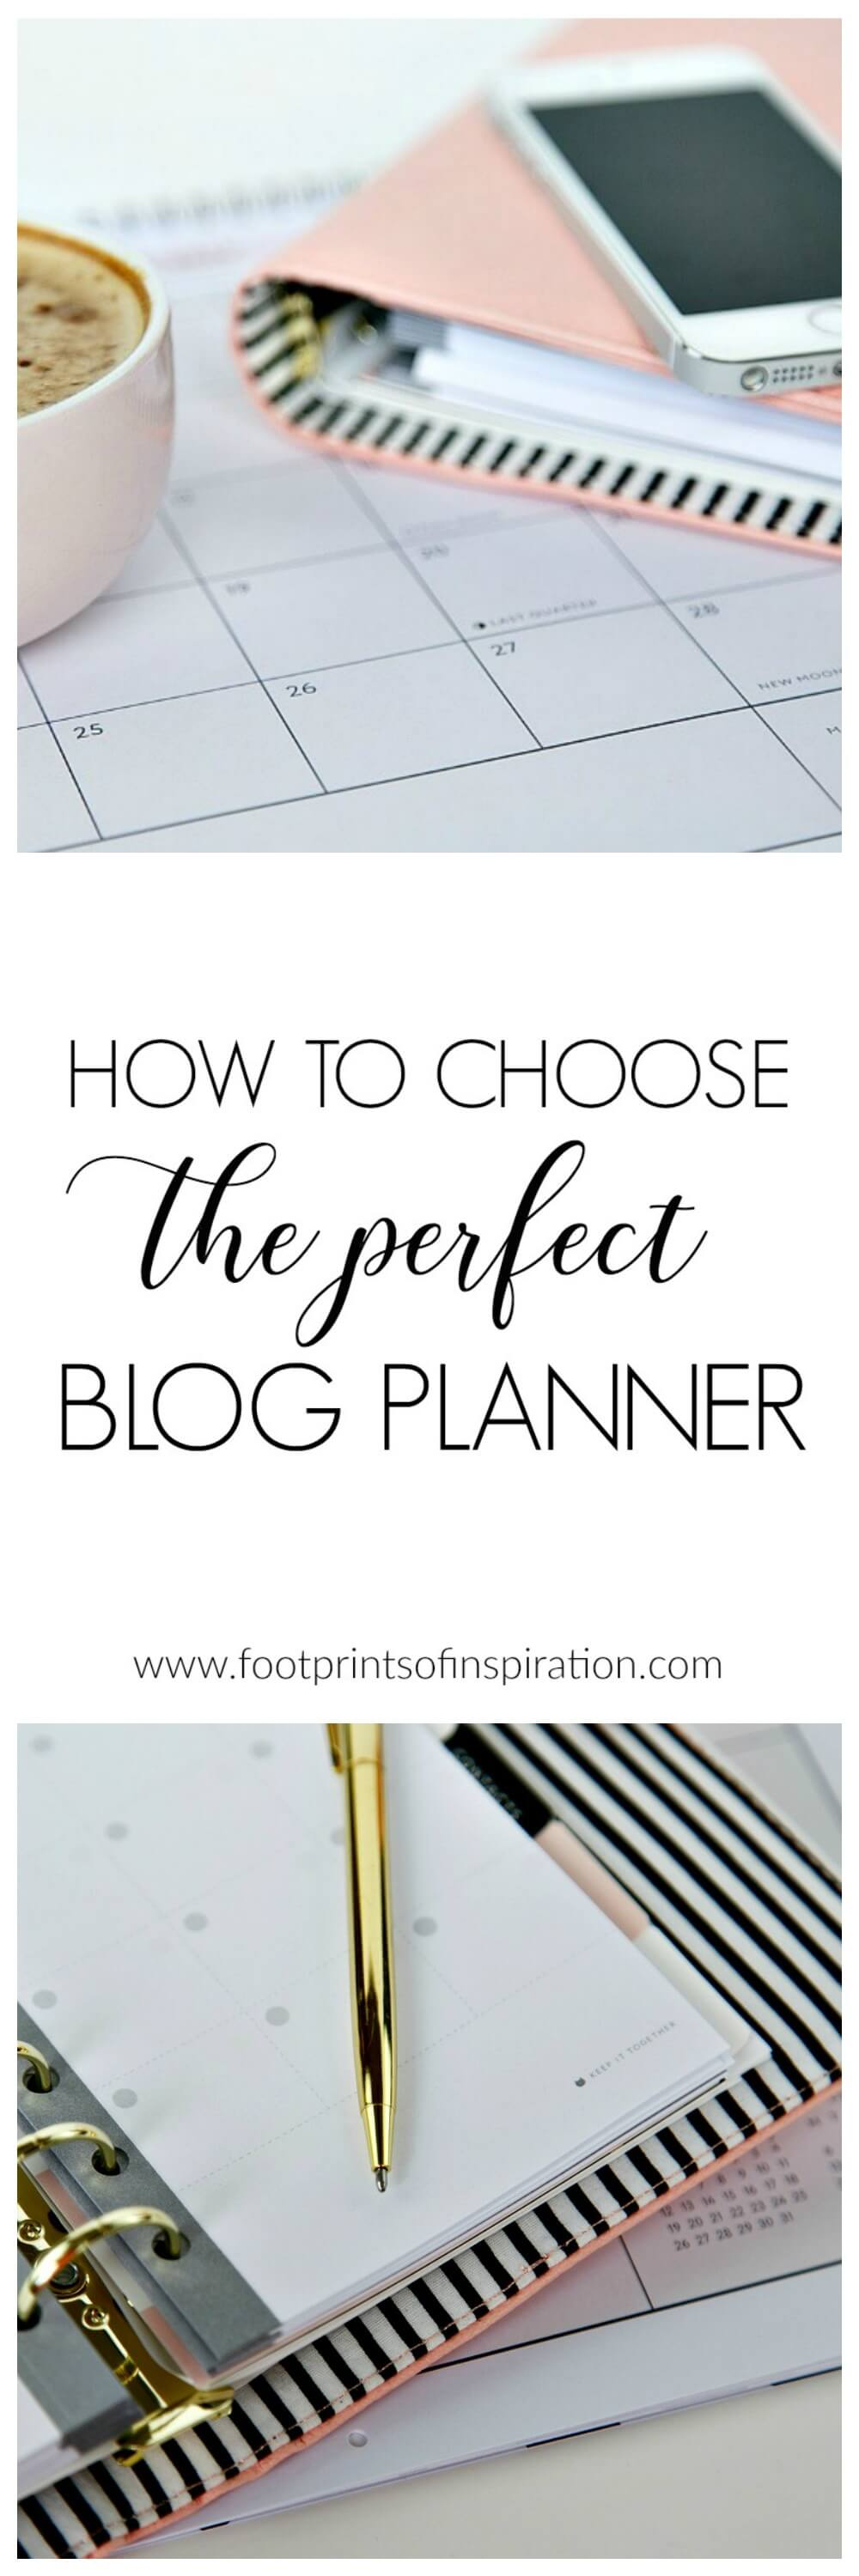 You need a blog planner that is going to help you stay organized so you can get the best ROI (return on your investment). Find out what's most important and where you can get a planner that has everything you need and doesn't break the bank.